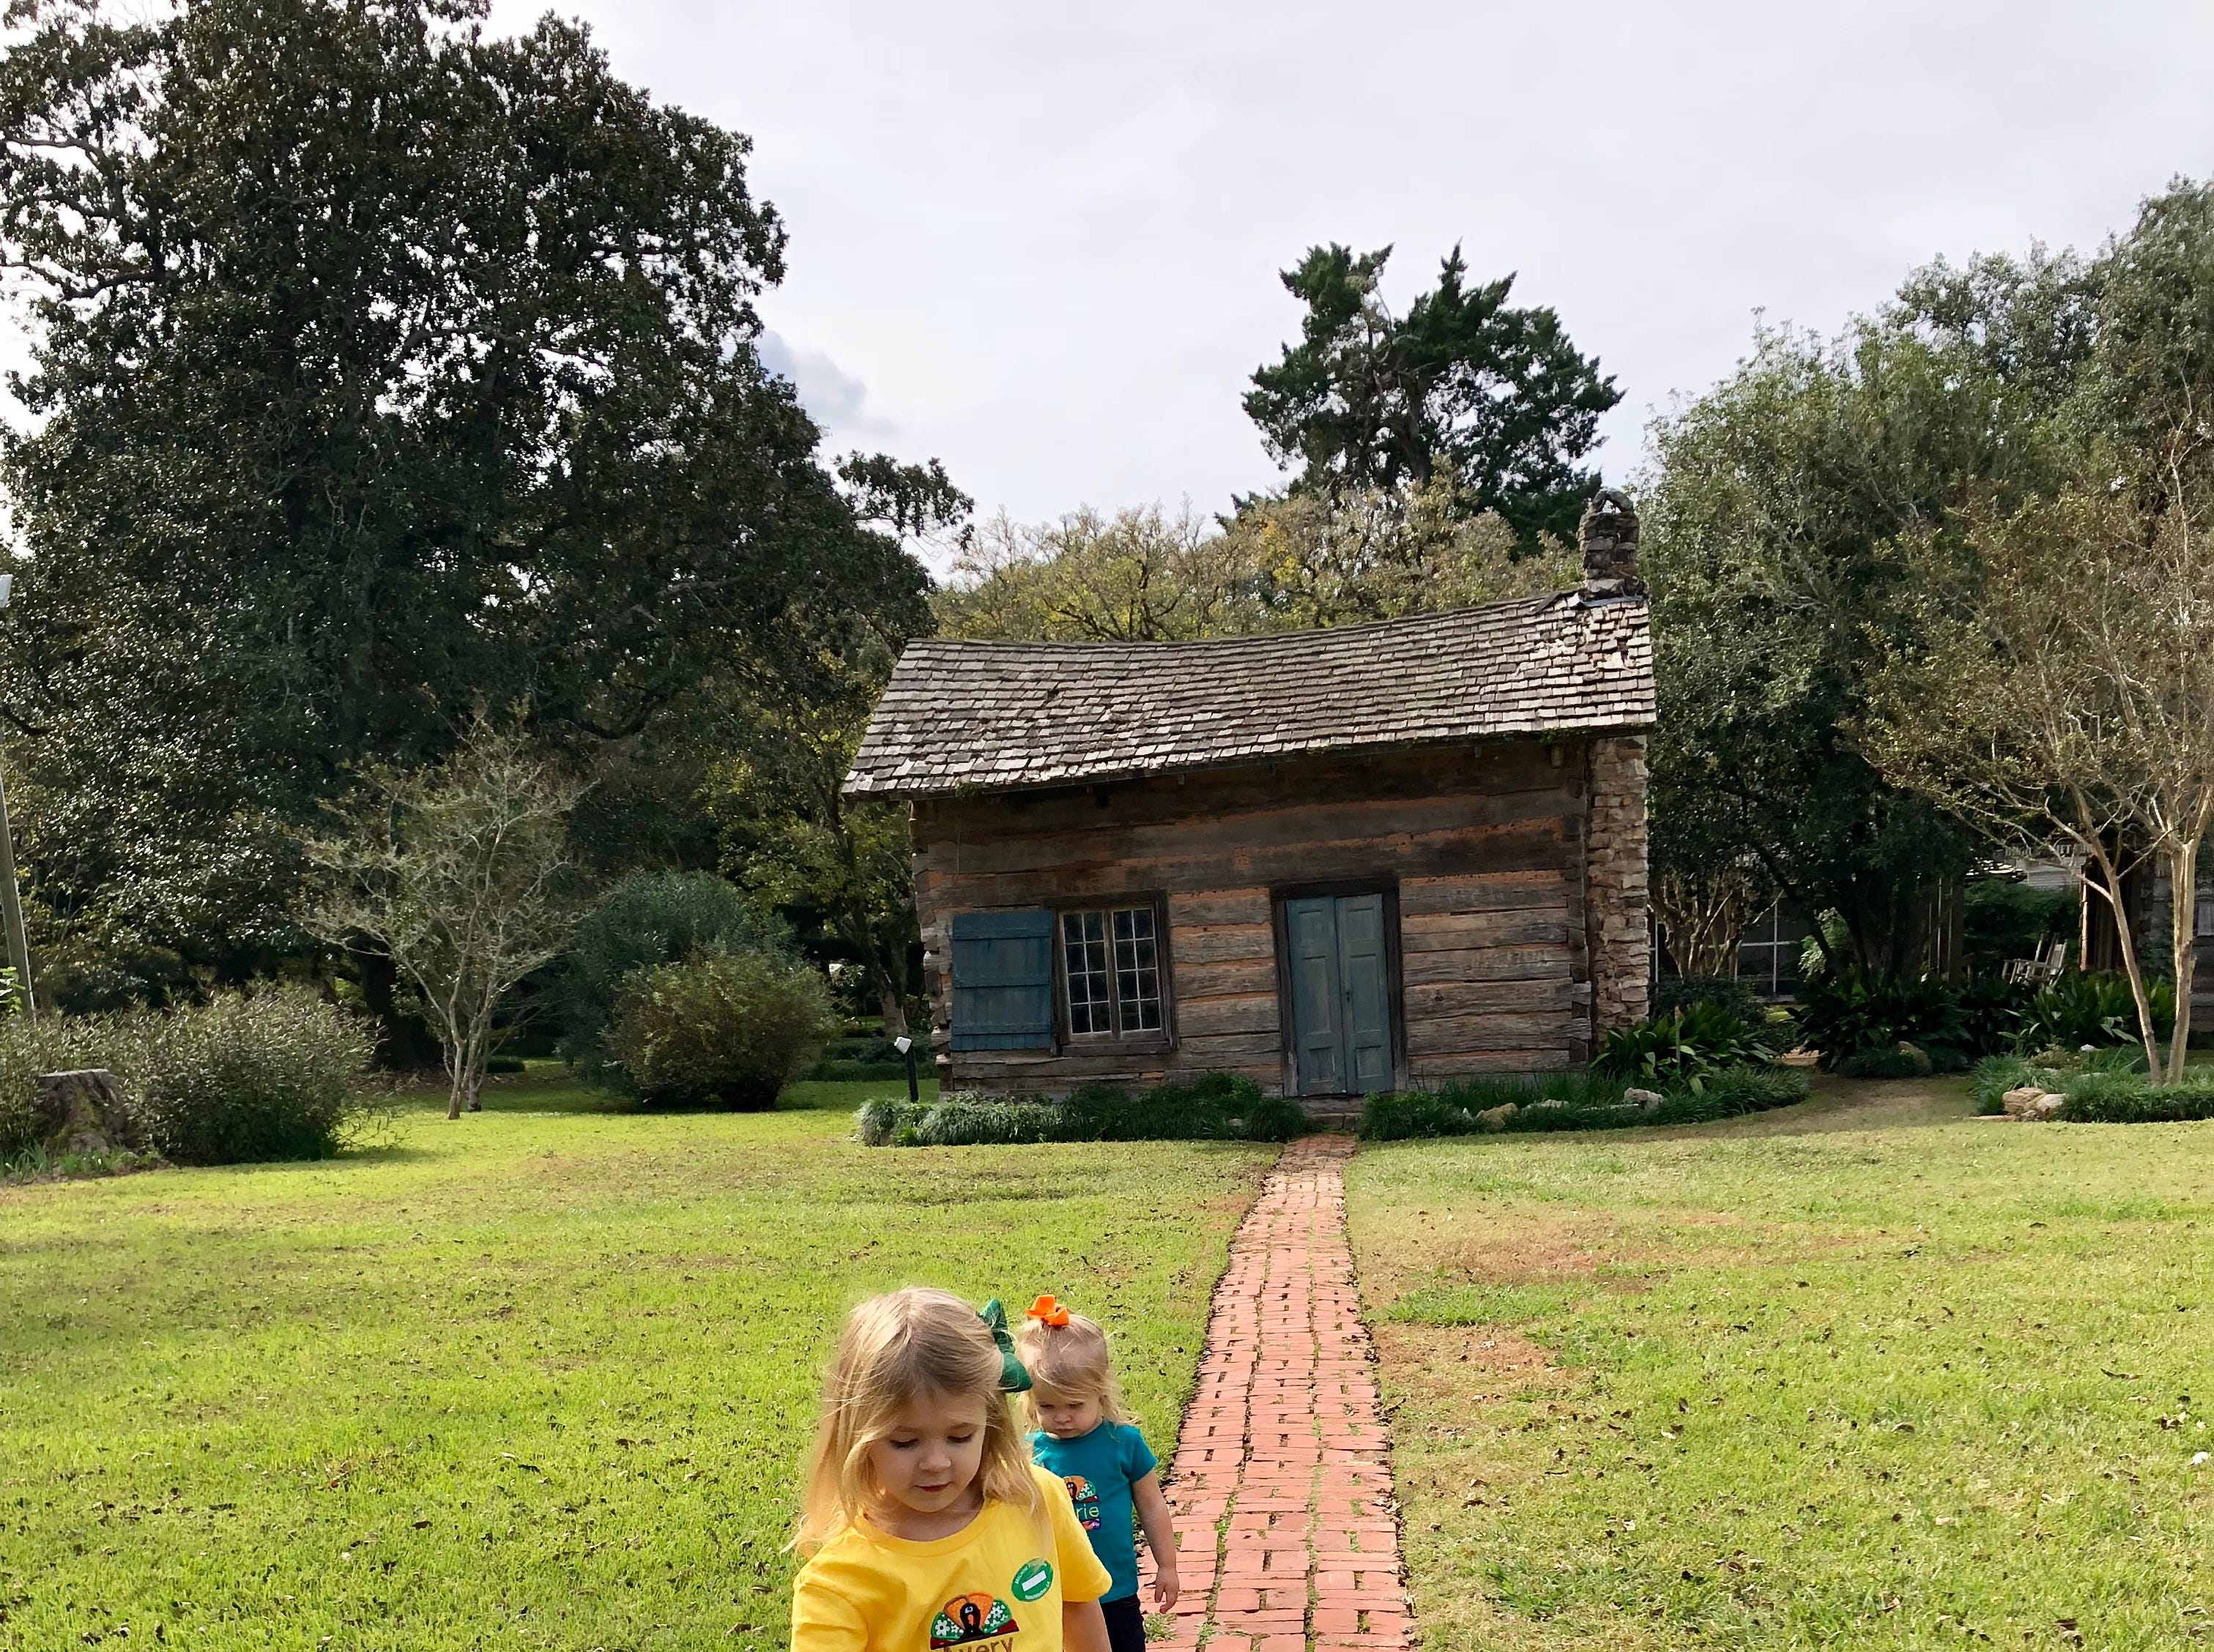 Sisters Avery and Marie Guidry take the grounds tour of Melrose Plantation in Cloutierville, Natchitoches Parish, as they explore the Cane River Creole National Heritage Trail Nov. 17, 2018.